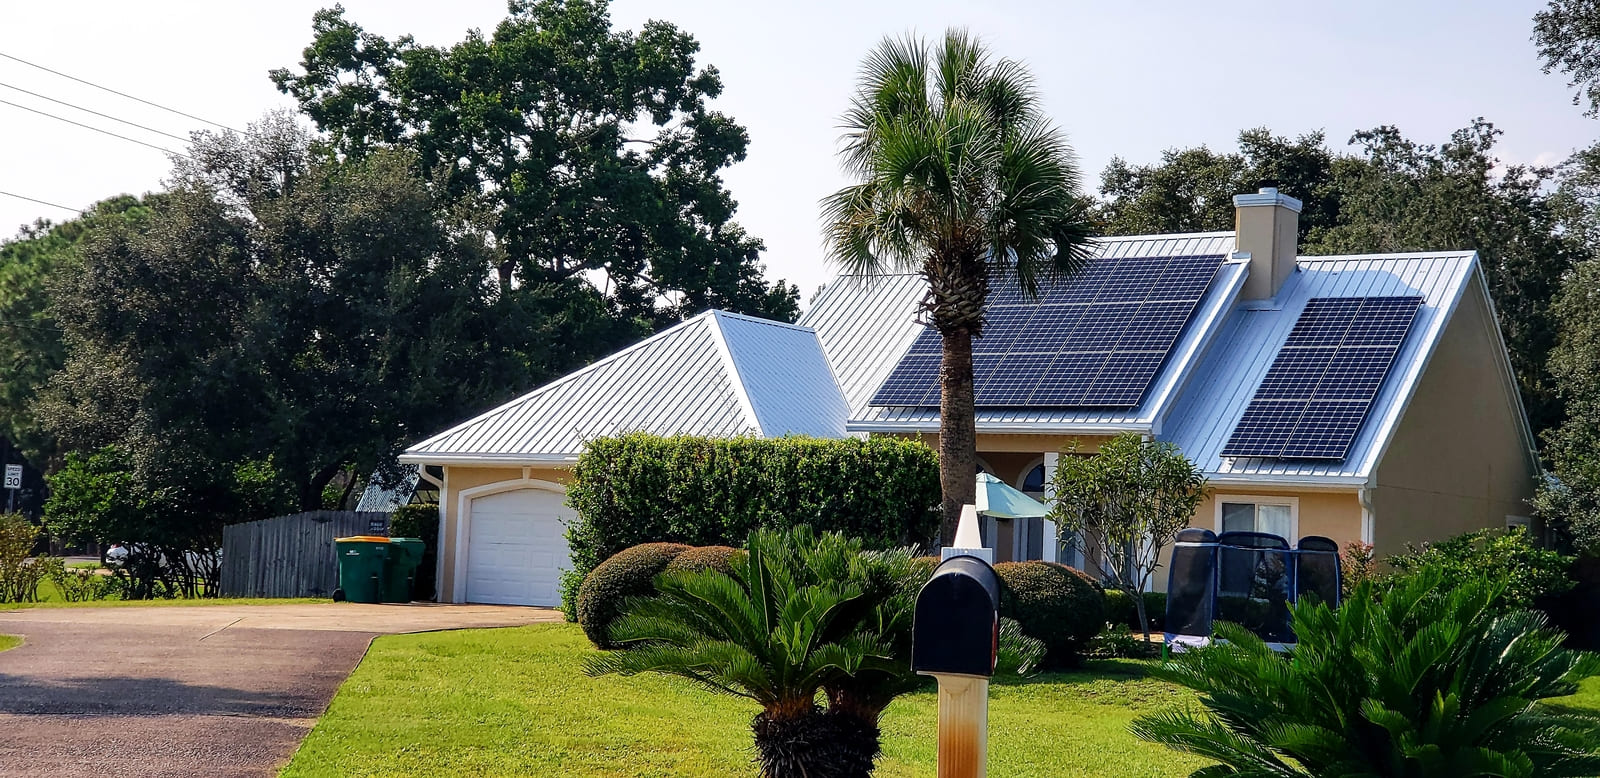 Traveling-through-a-nice-neighborhood-full-of-nice-eco-friendly-homes-i-found-one-standout-with_t20_qaz7vw%20%281%29%20%281%29